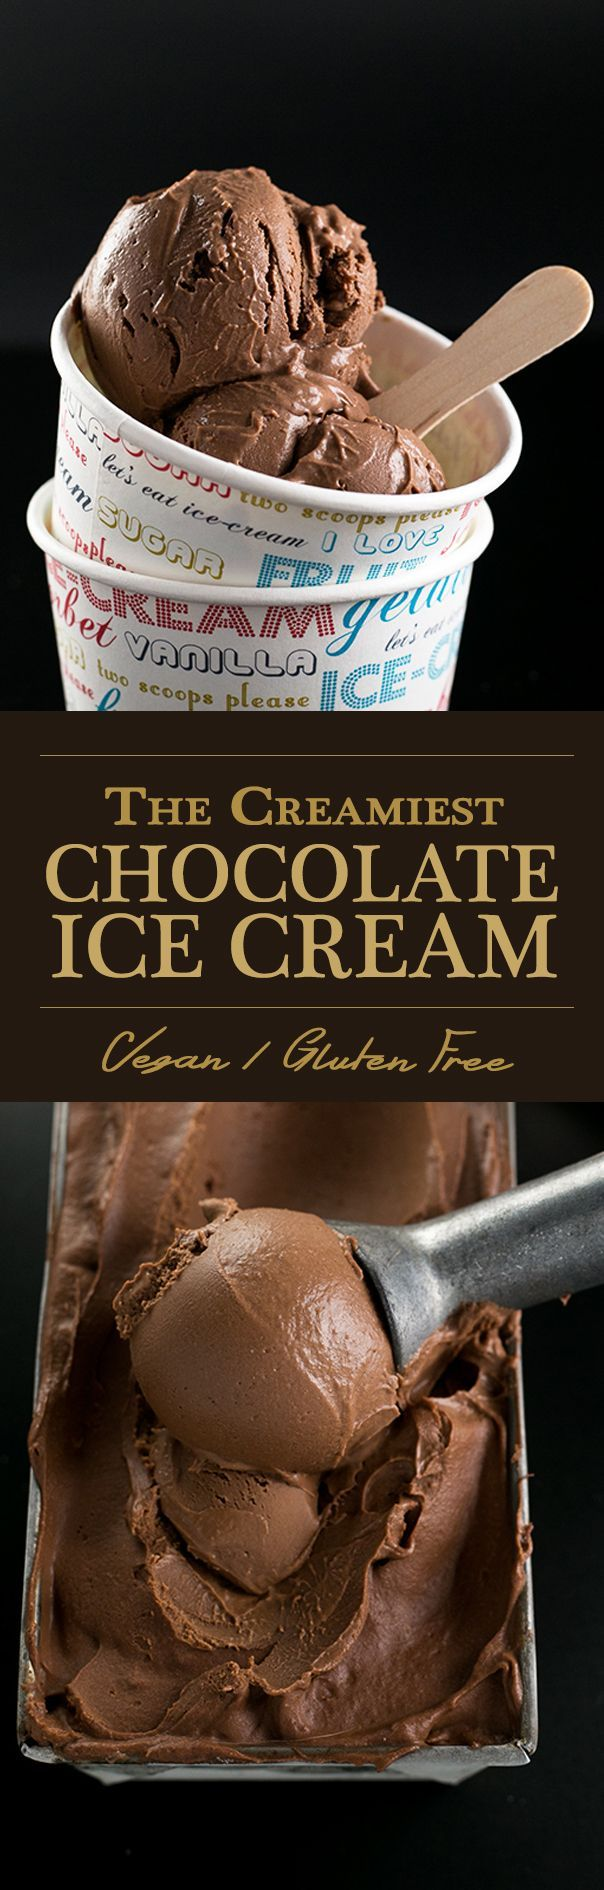 The Creamiest Vegan Chocolate Ice Cream - homemade, ultra creamy and scoopable chocolate ice cream made with cashews and coconut milk. Vegan and Gluten Free.